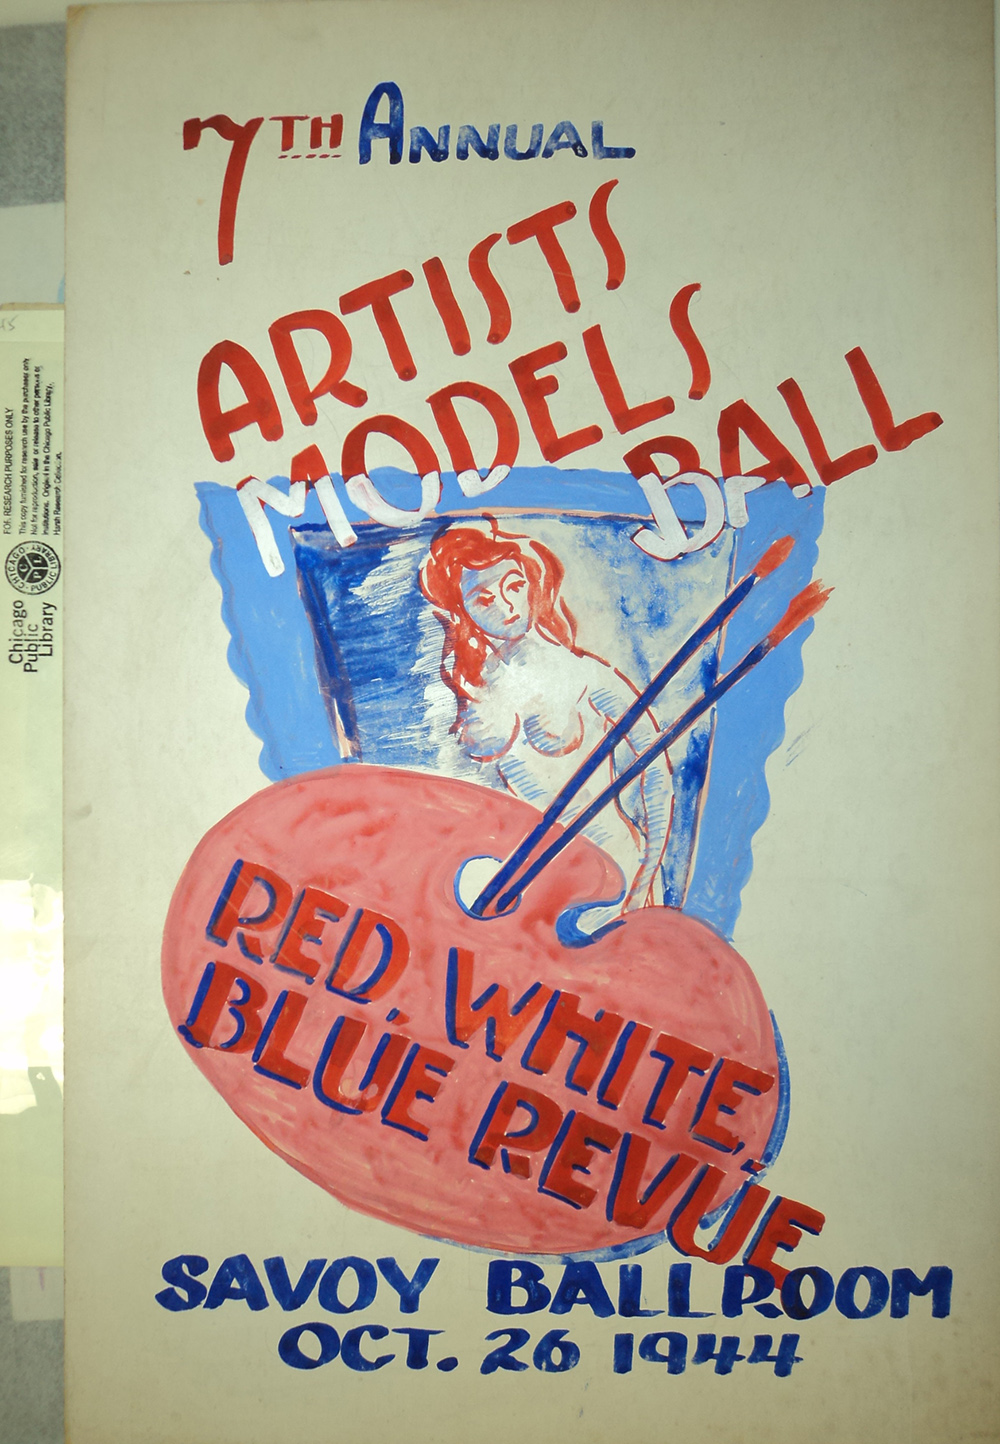 Attributed to William McBride Jr., design for 7th annual Artists and Models Ball, South Side Community Art Center, 1944, in William McBride Jr. Papers, Vivian Harsh Research Collection, Chicago Public Library